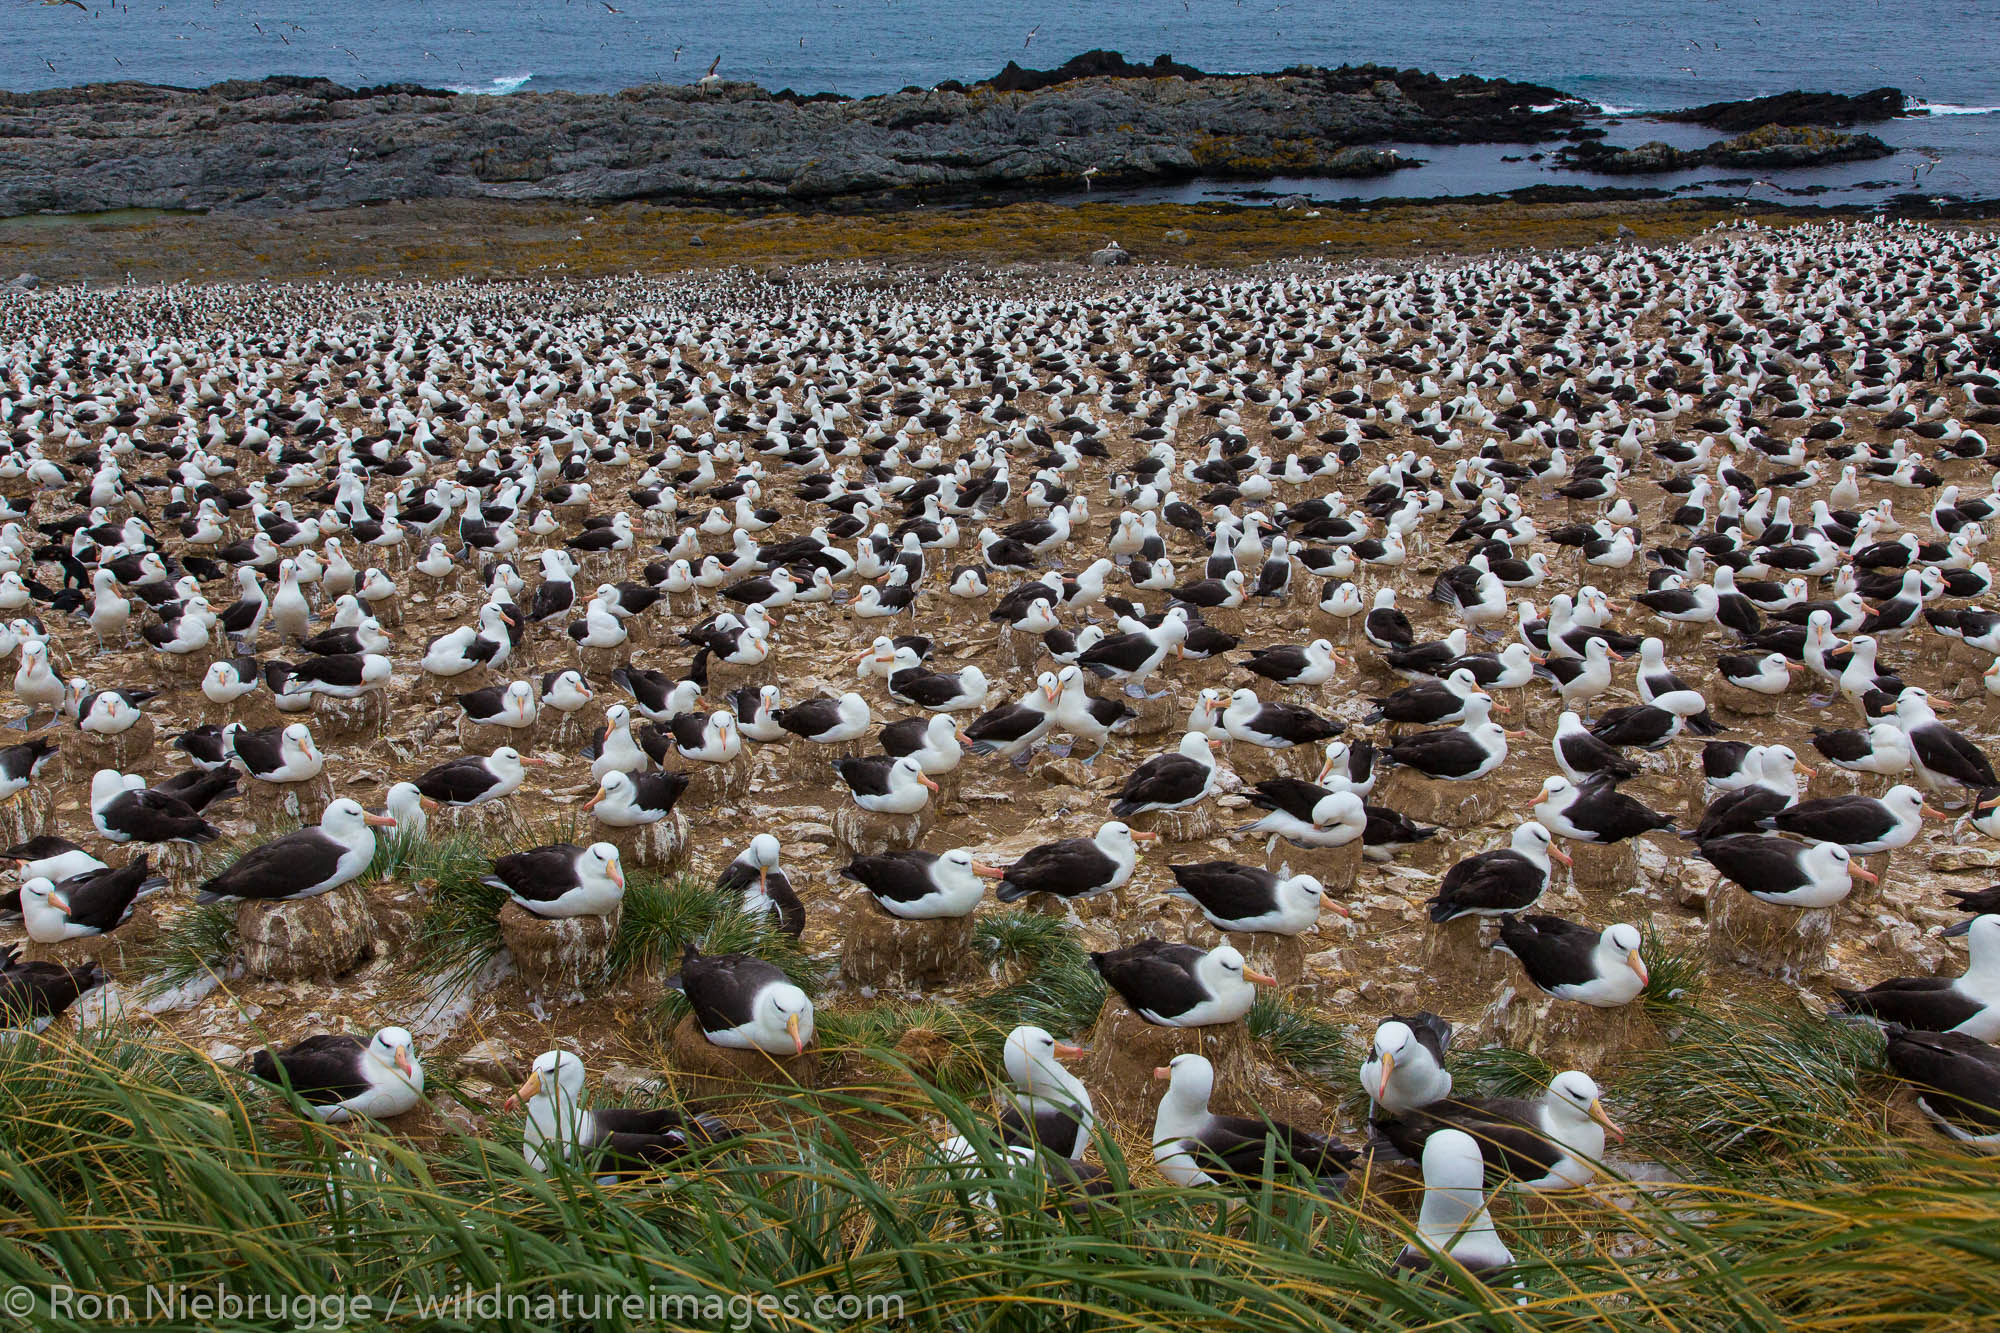 Black-browed albatross colony, Steeple Jason Island, Falklands.